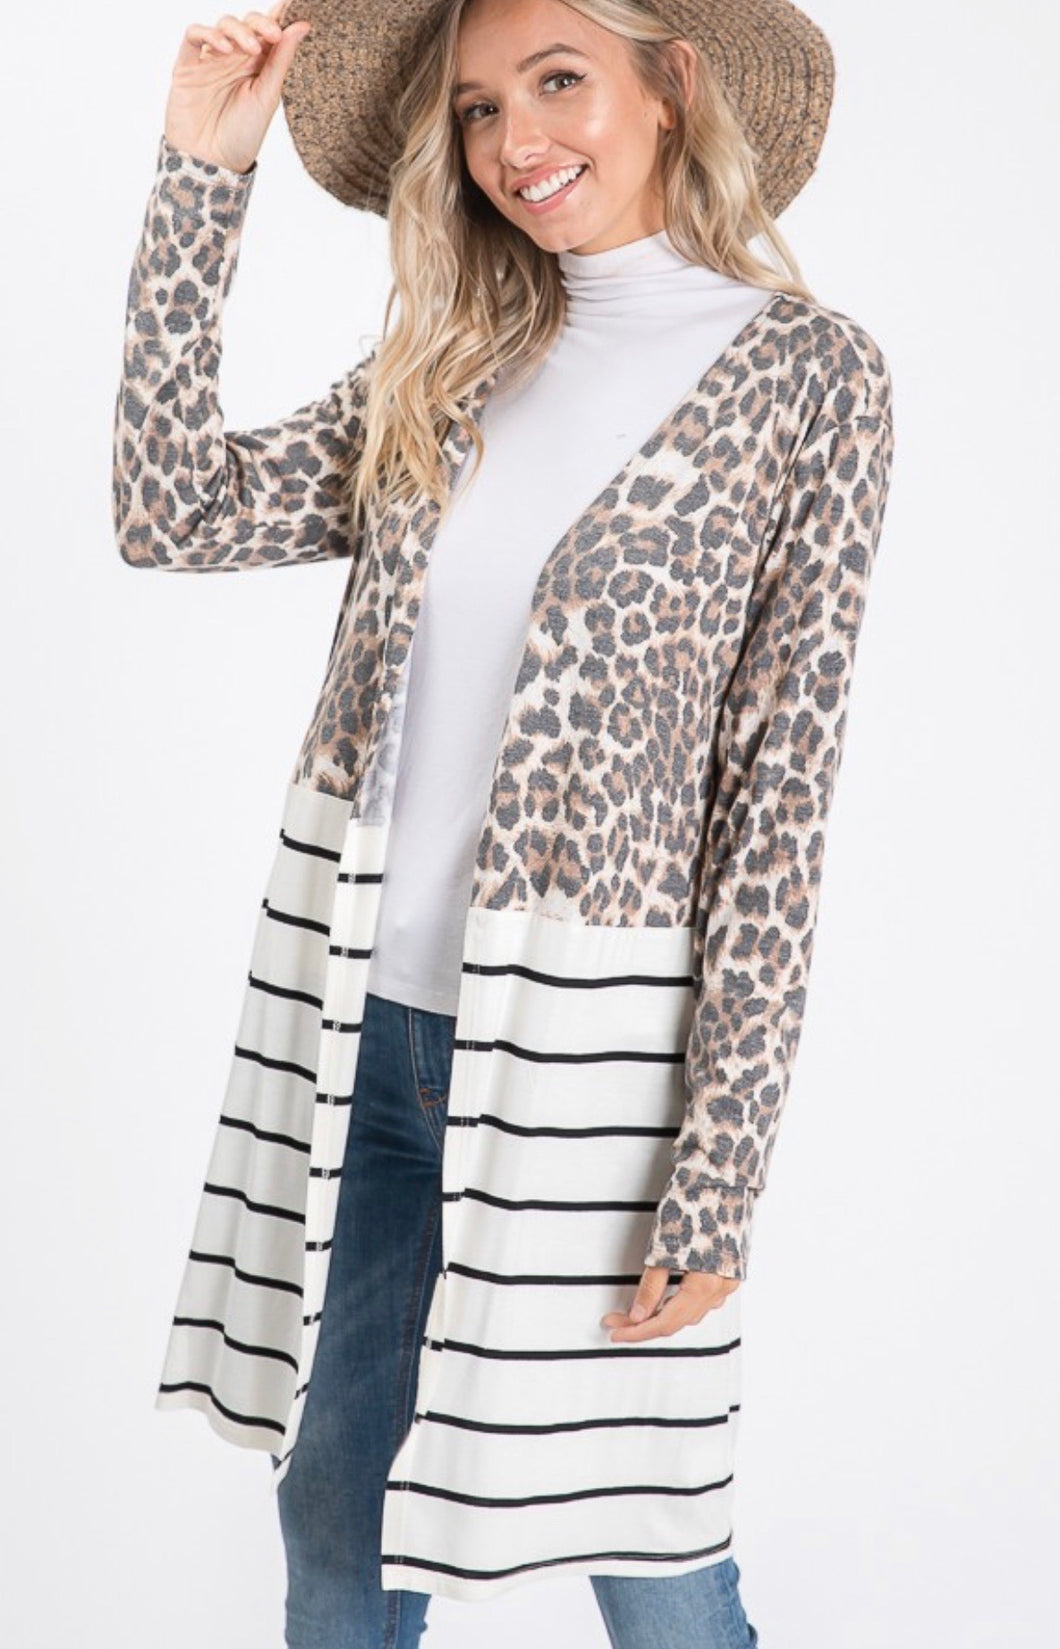 916 - Leopard Stripes Cardigan